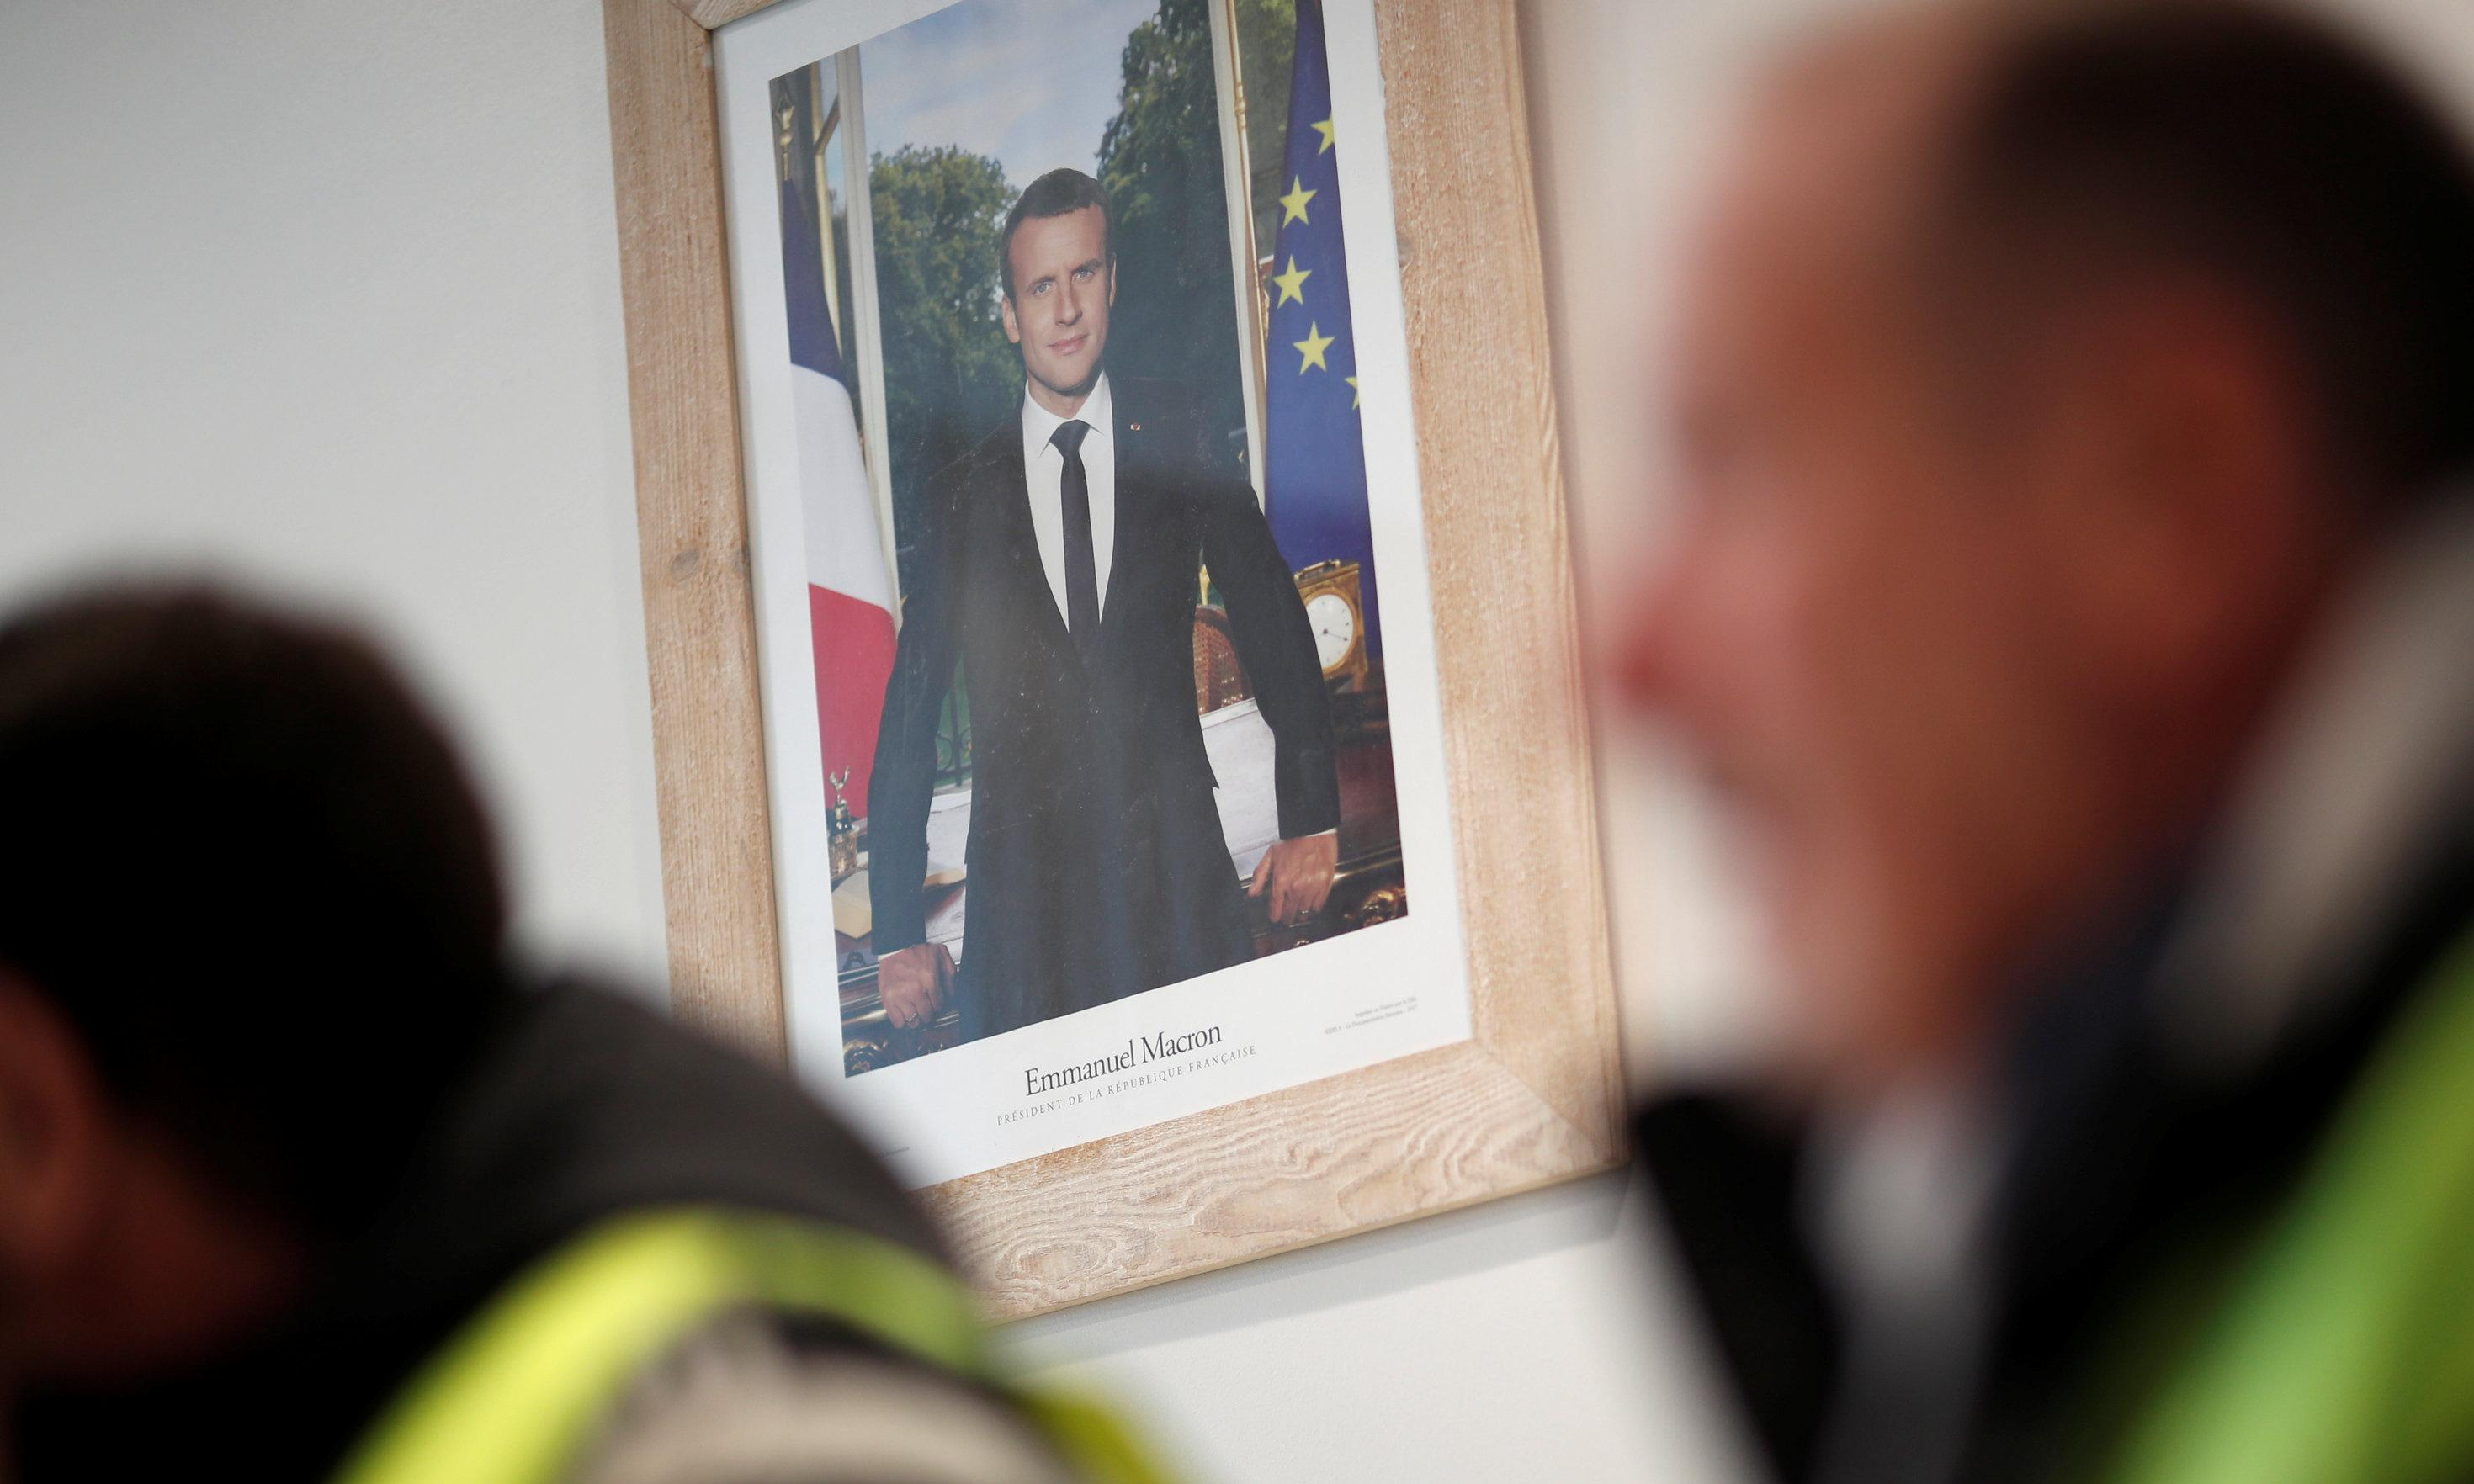 Protesters who took Macron portrait acquitted on grounds of climate crisis